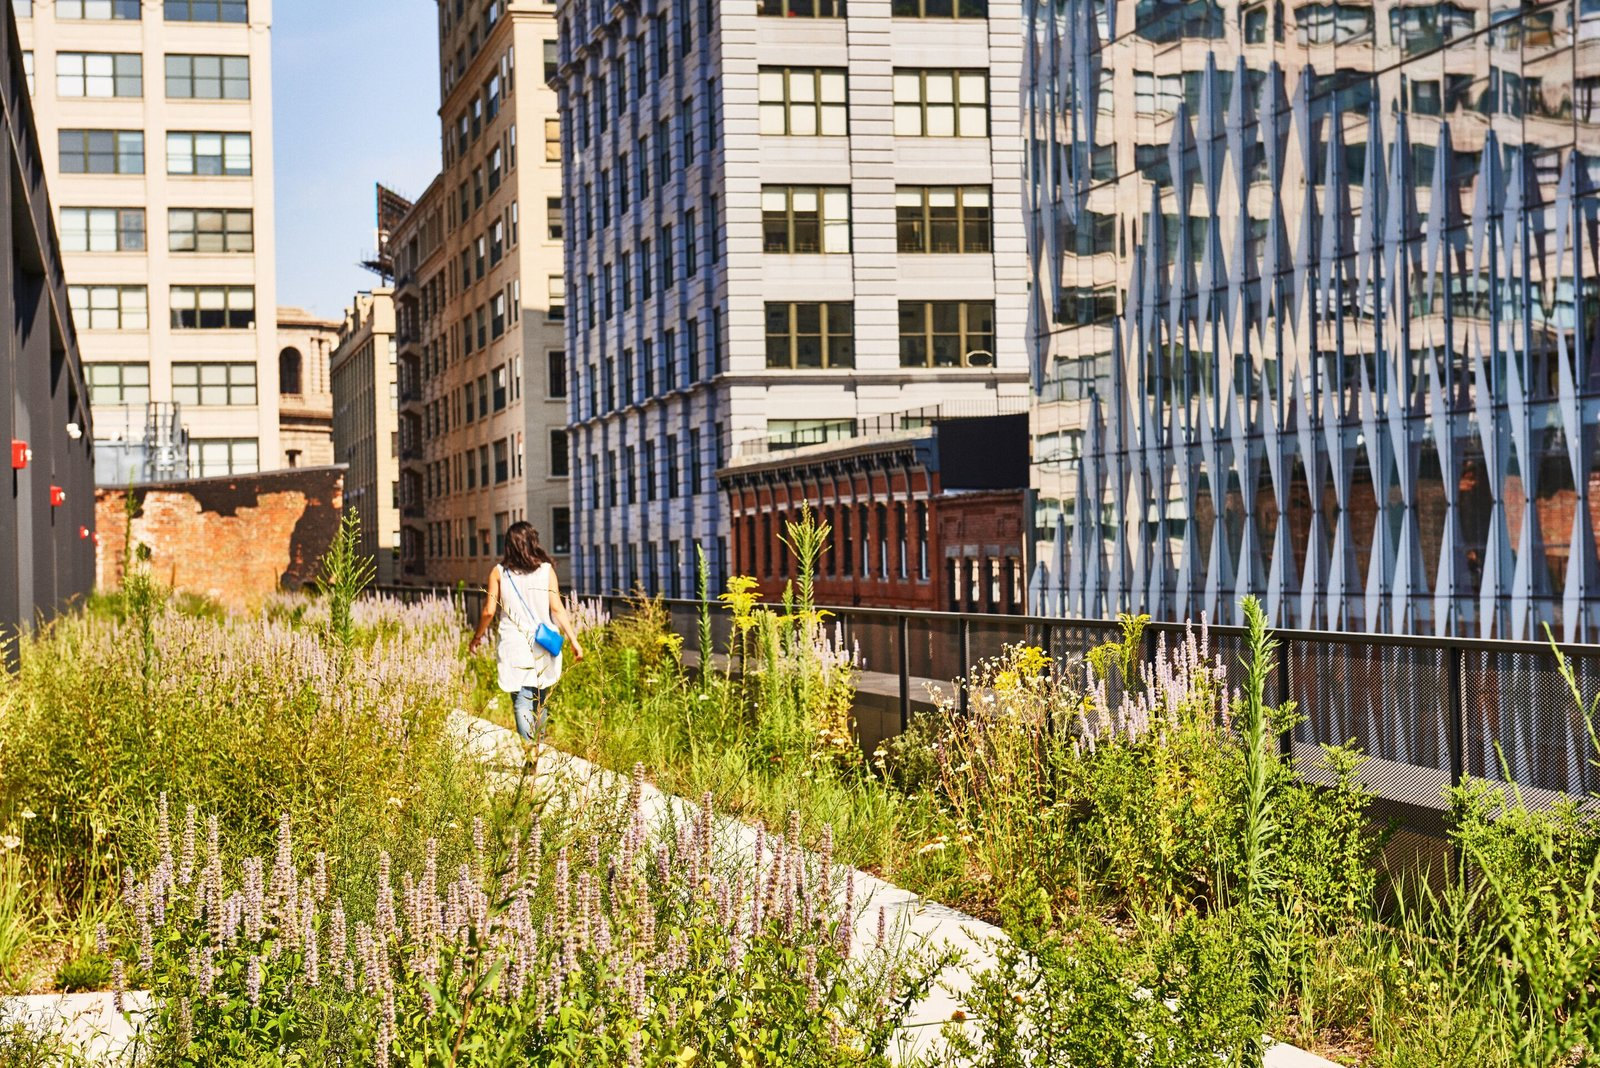 Photo 2 of 14 in A Brooklyn-Based Landscape Firm That's Reshaping New York City's Green Urban Scene